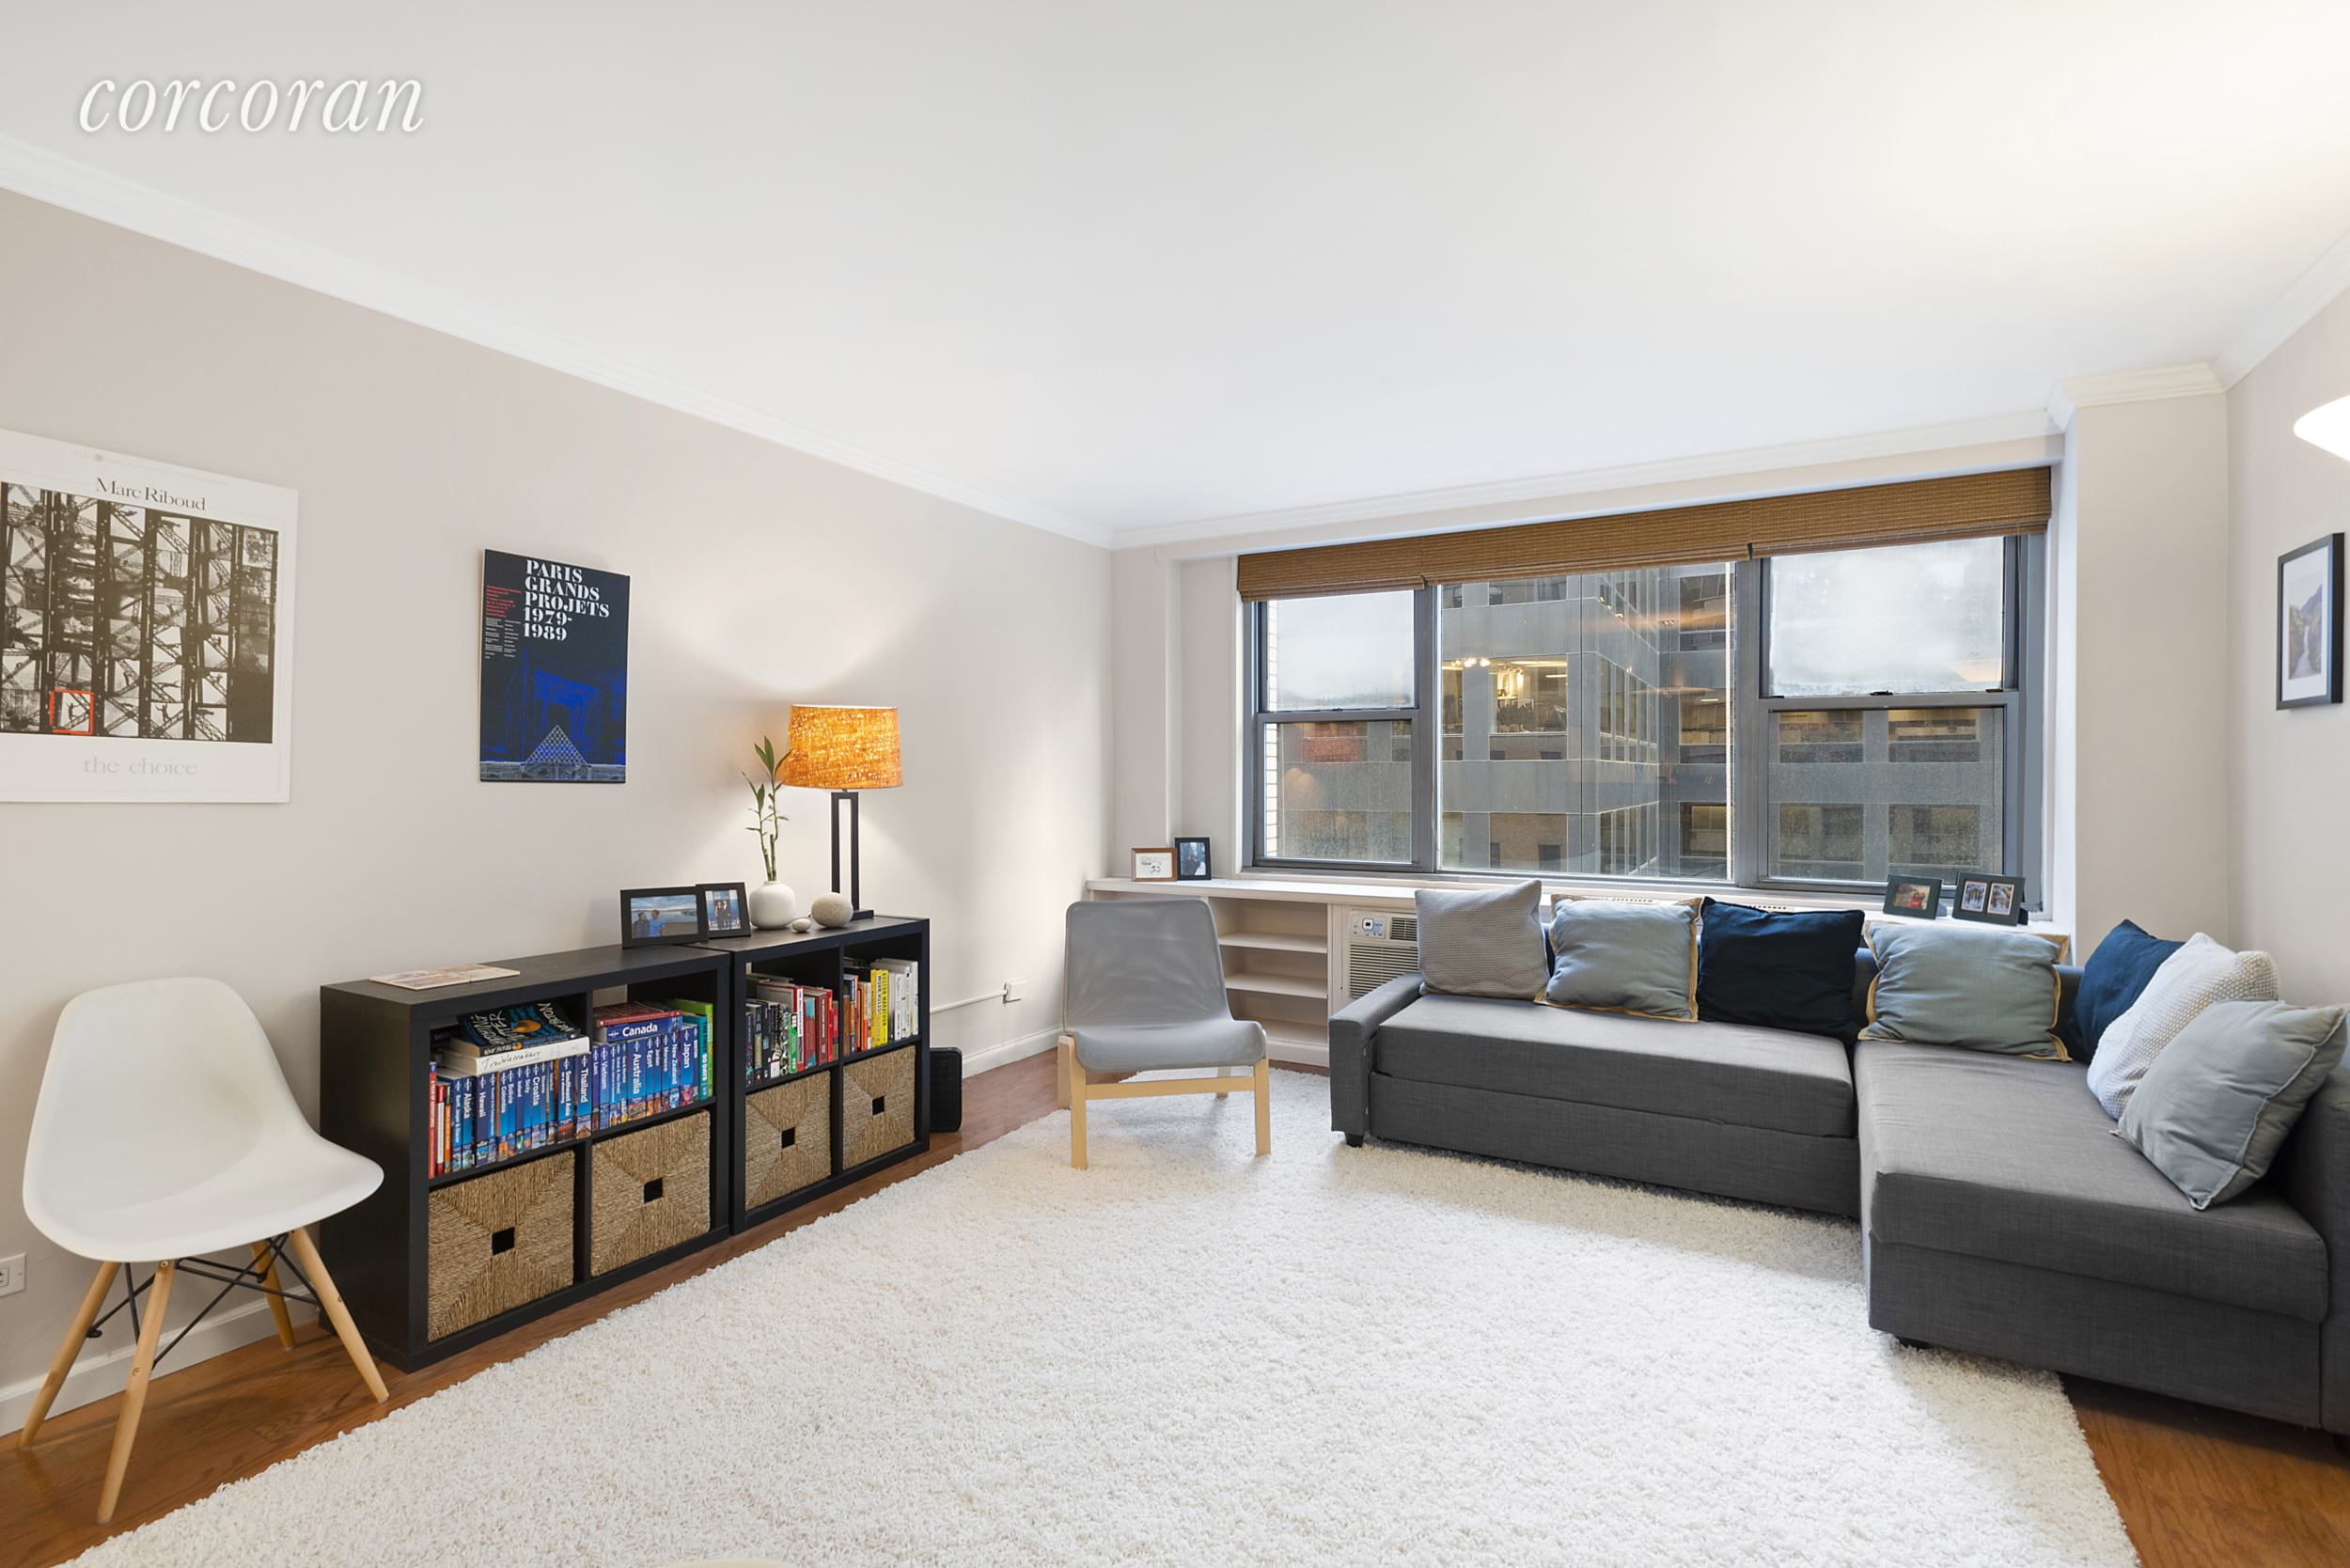 Available July 1st! Move right into this spacious one-bedroom at  The Sterling , a full service building in Midtown East. The owner recently renovated the bathroom with a Toto toilet & spa-like shower. The kitchen is also renovated with stainless steel appliances and is open to the living area. The living area has room for a large dining table, full size couch and faces south onto 56th street. There are custom window treatments in both the living room and the bedroom. The bedroom easily fits a king-sized bed and desk and there are two large closets in the bedroom, and two large closets including a linen closet in the entry & hallway. Easy board application. No Pets.  The East 50's allow access to the 4, 5, 6, E, M, N, R, Q, & F trains as well as many attractions such as Rockefeller Center, Central Park, & MoMA; shopping including Bloomingdale's, Home Depot, & Bed Bath and Beyond; and dining options from Smith & Wollensky, Le Cirque, to Whole Foods. The Sterling is pet-friendly & features a 24 hour doorman, 2 elevators, live-in super, laundry room, and roof deck.